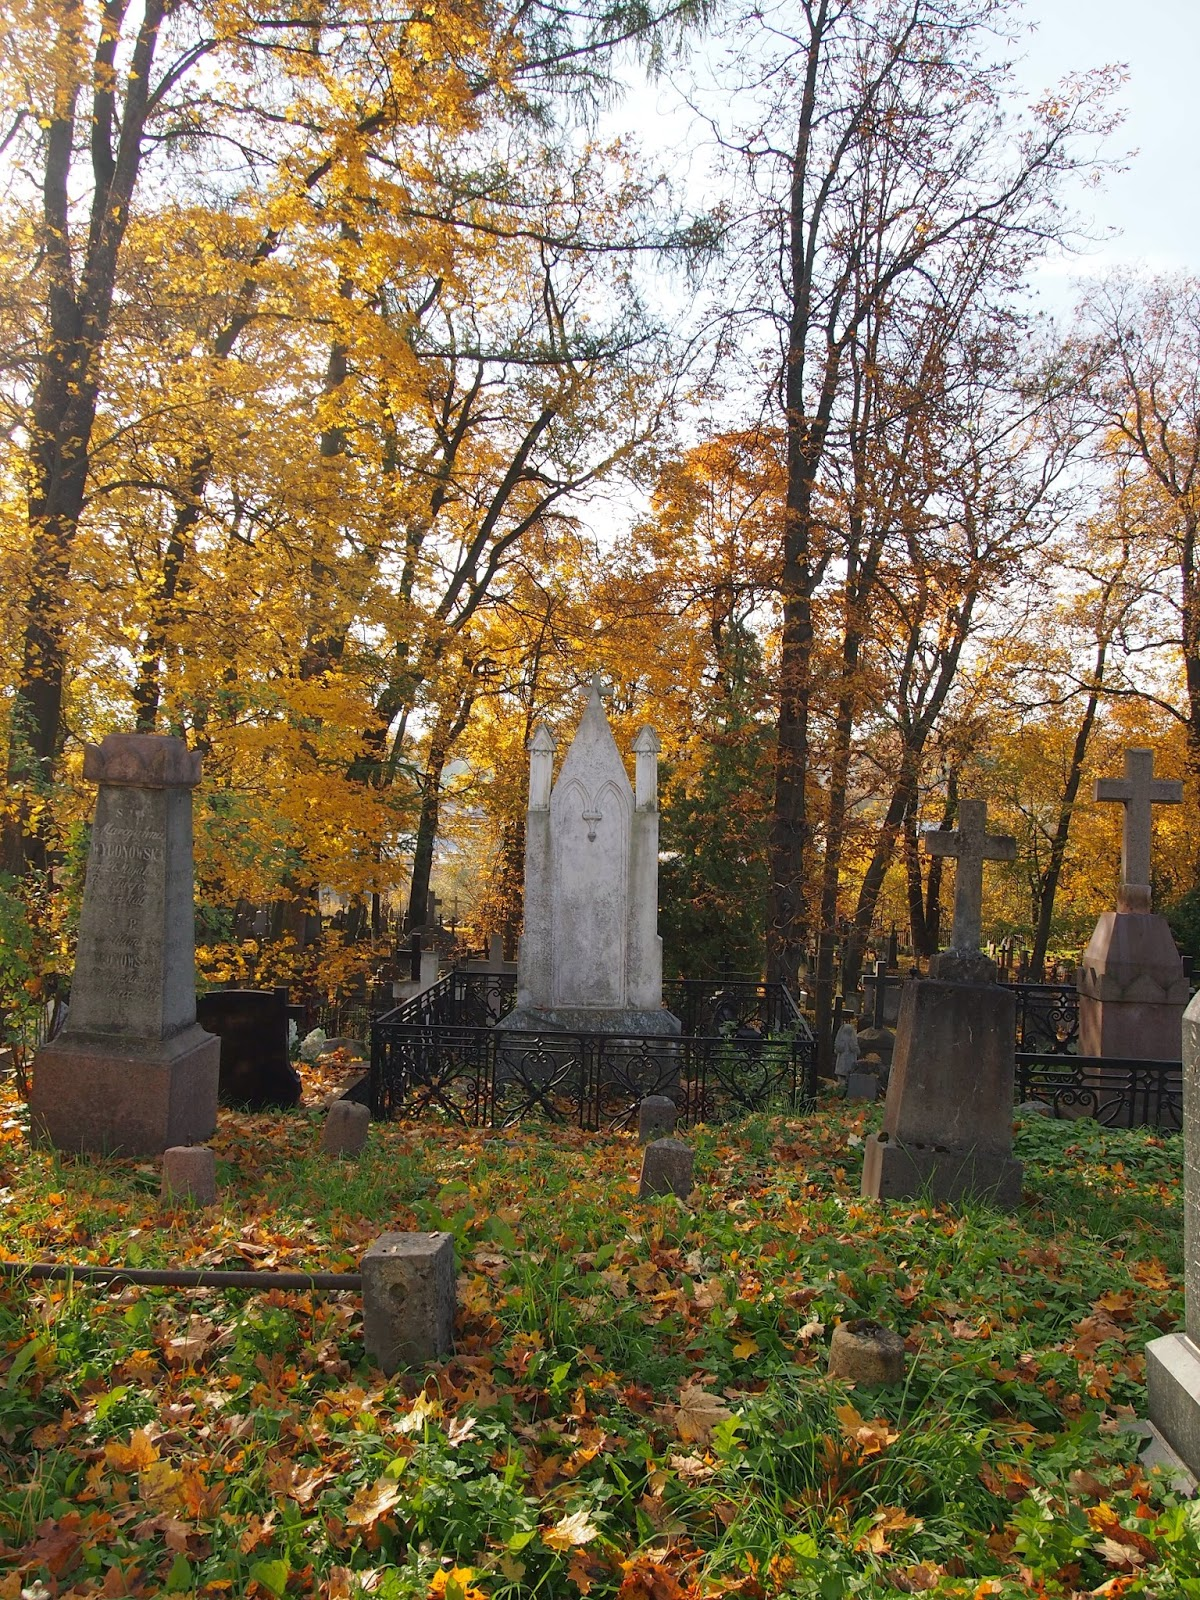 Fall foliage and the oldest graveyard in Vilnius